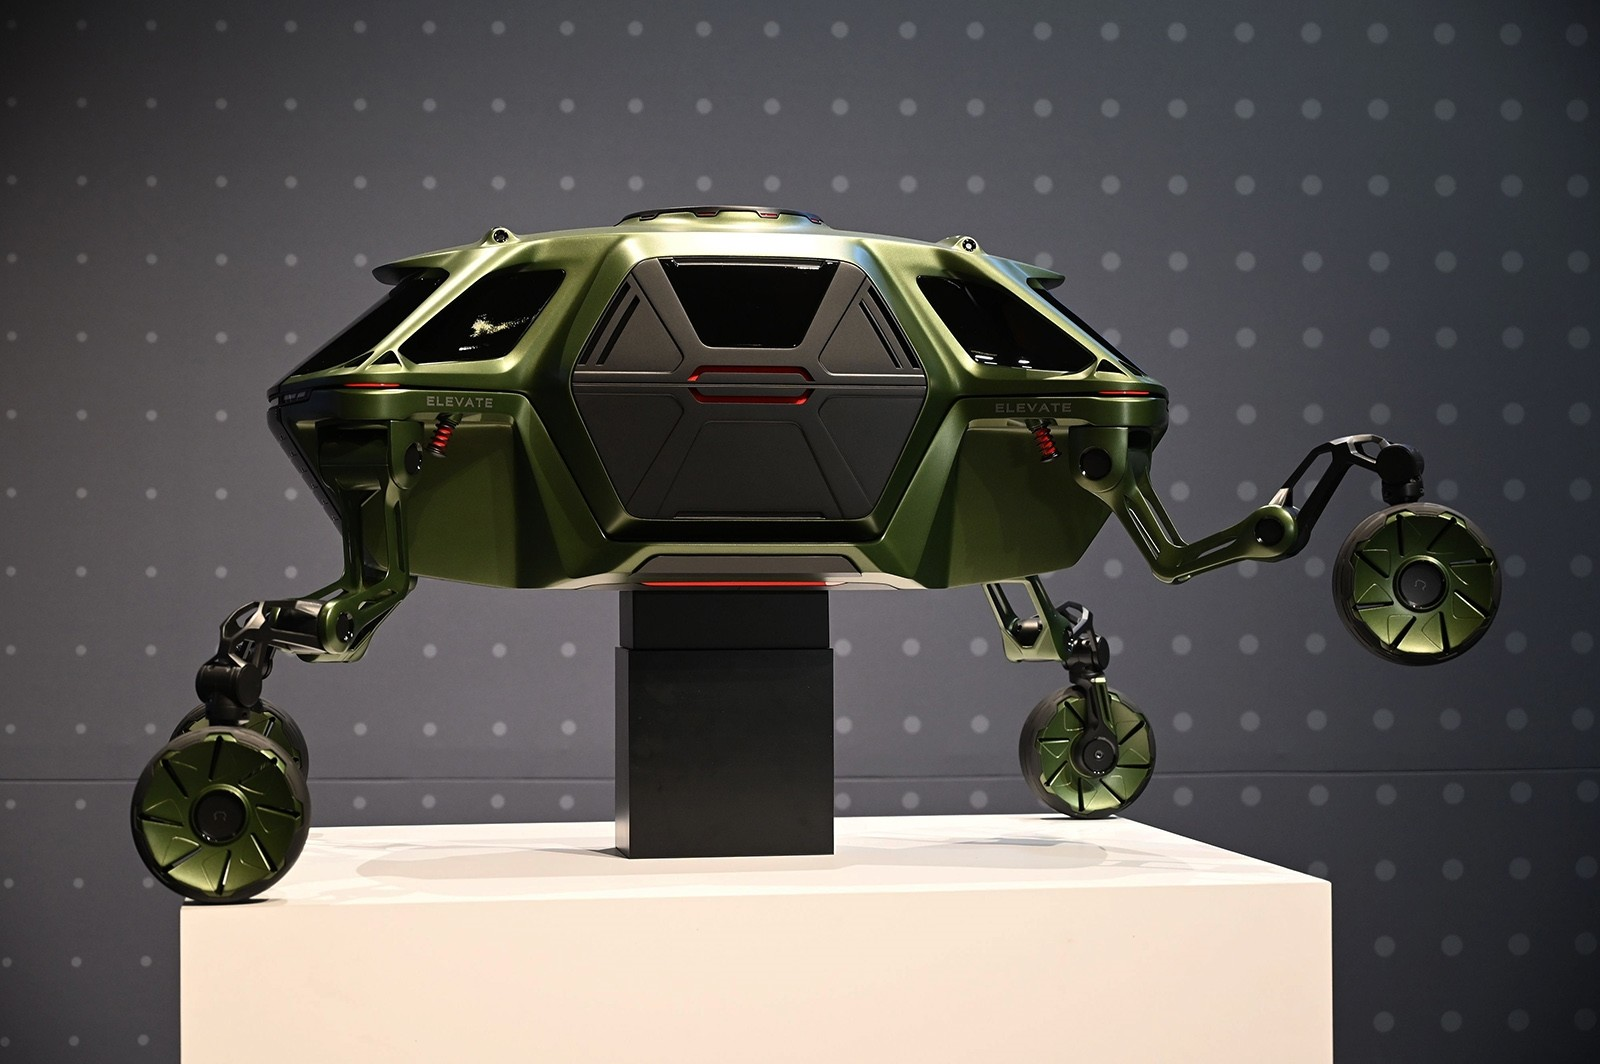 Pet robots, VR, walking cars: CES 2019 wraps up in Las Vegas